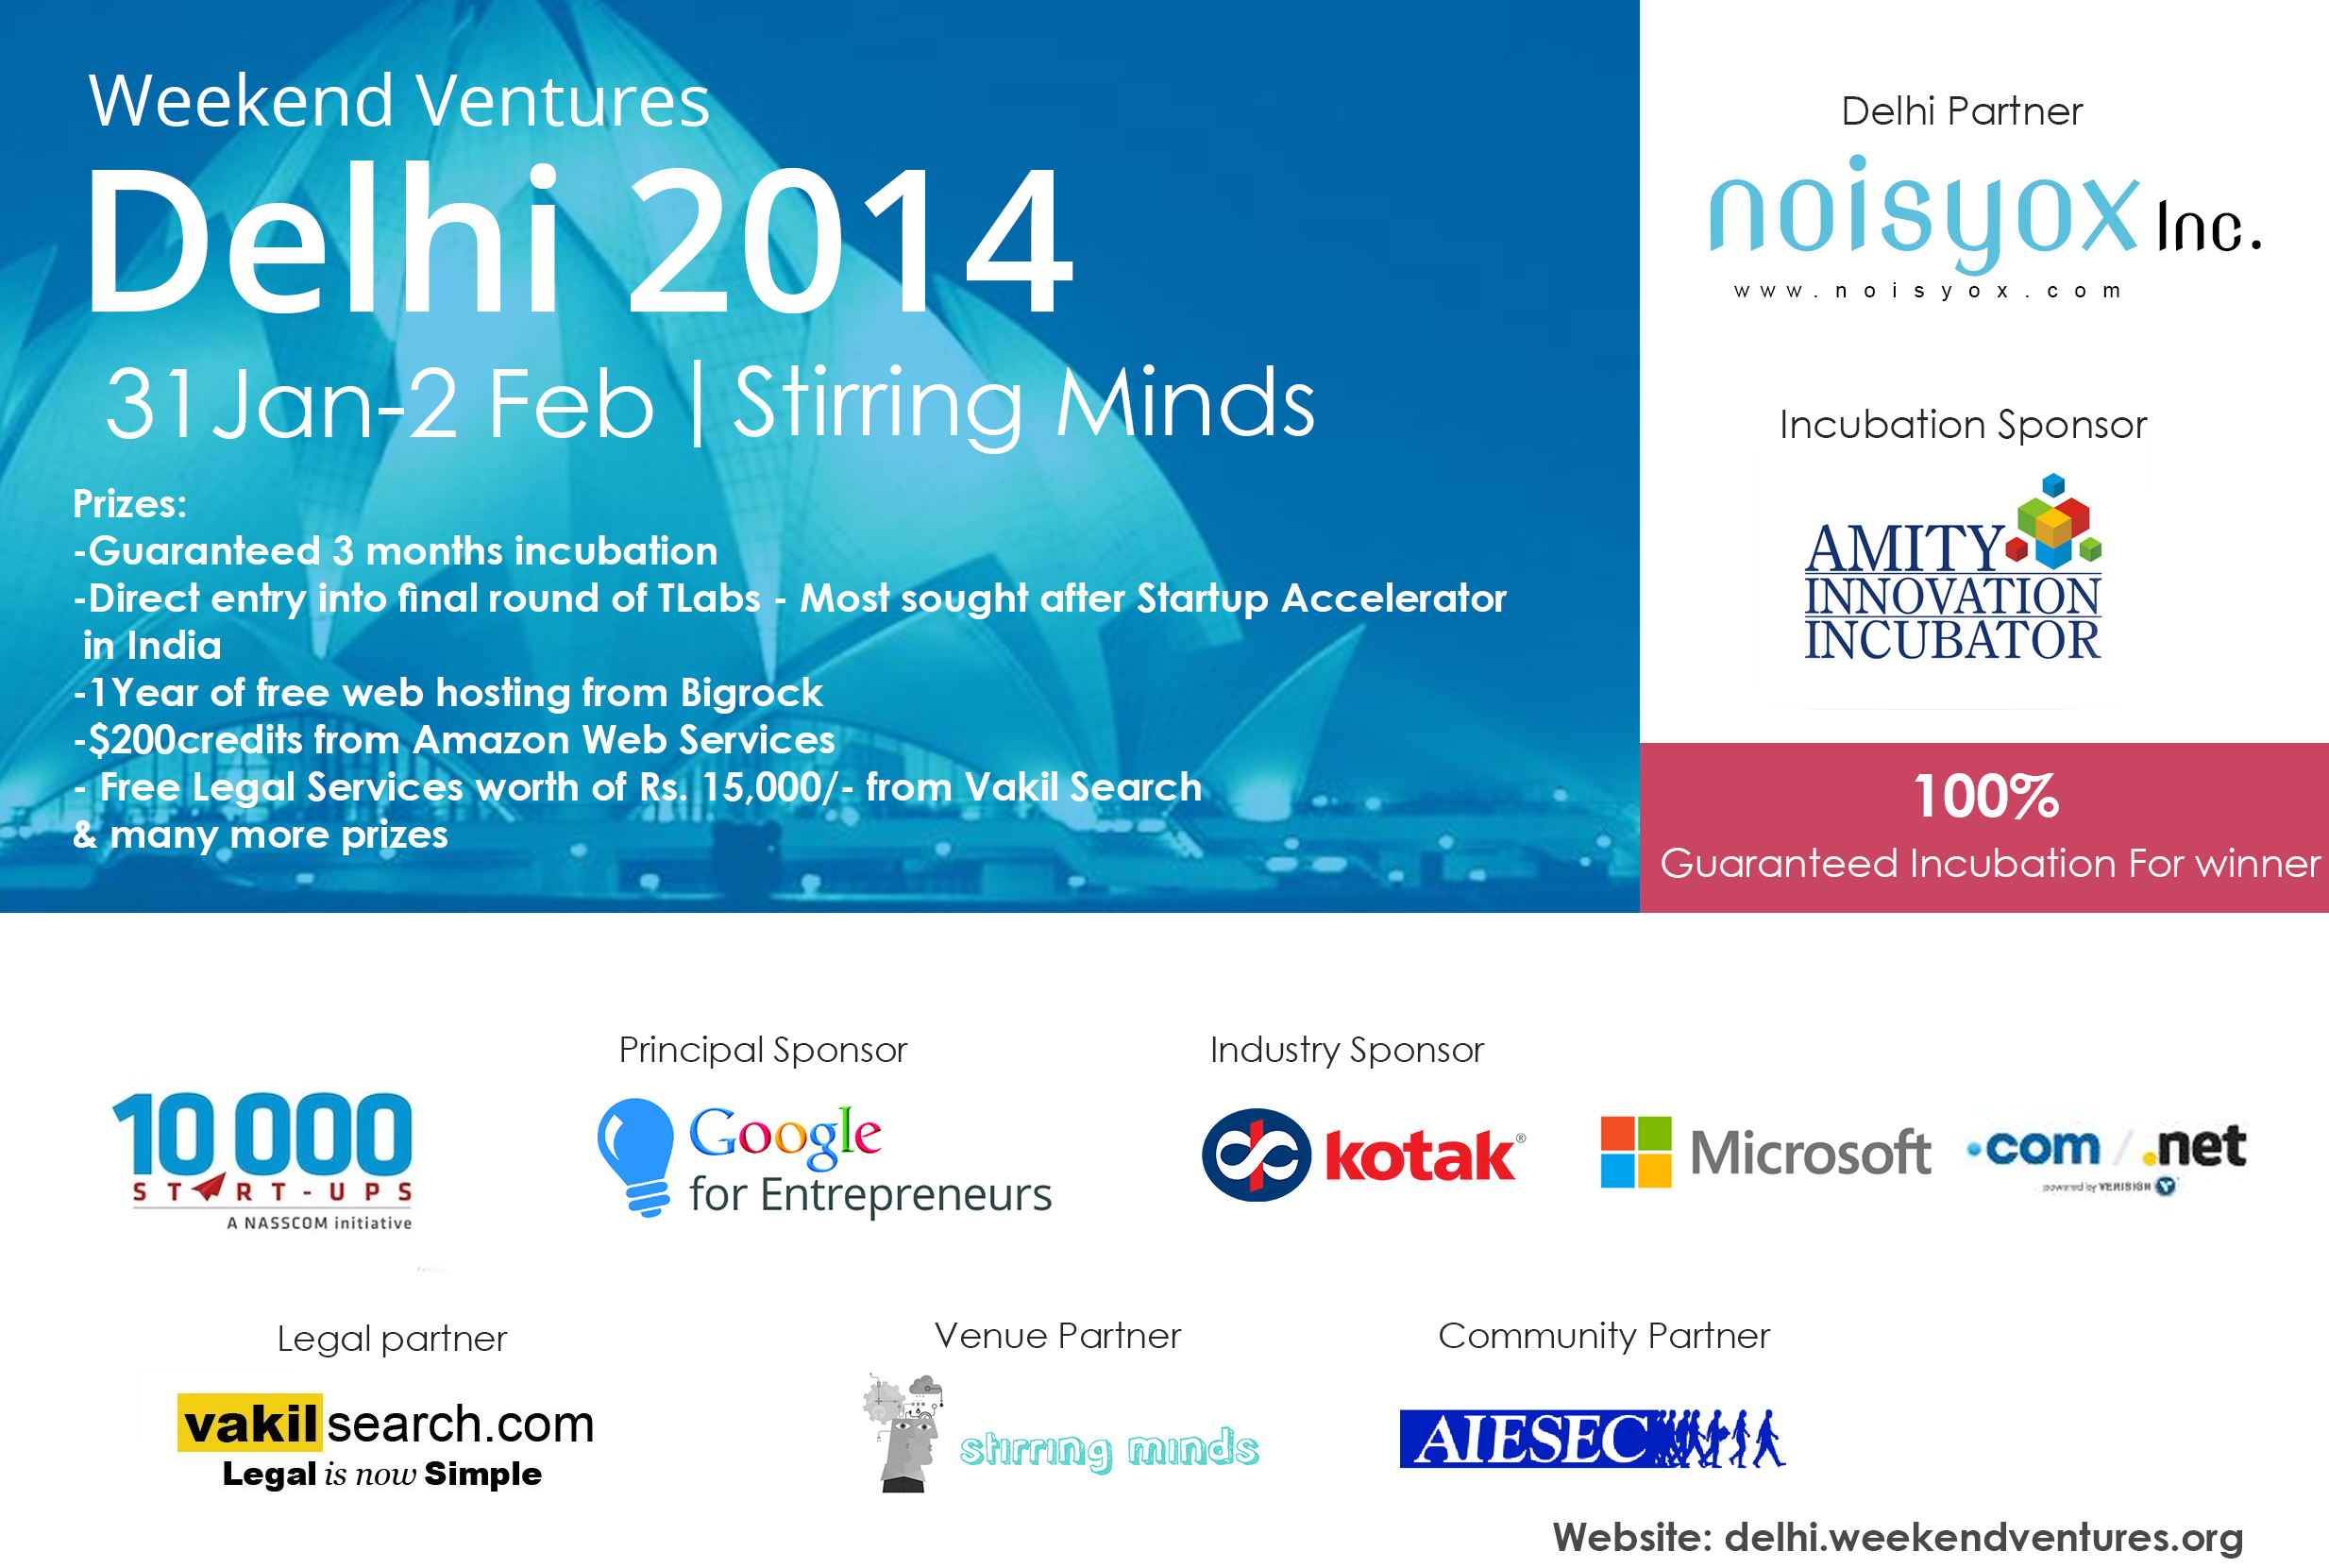 54 Hrs Startup Launch Event Weekend Ventures Organizes Delhi Edition from Jan 31st to Feb 2nd